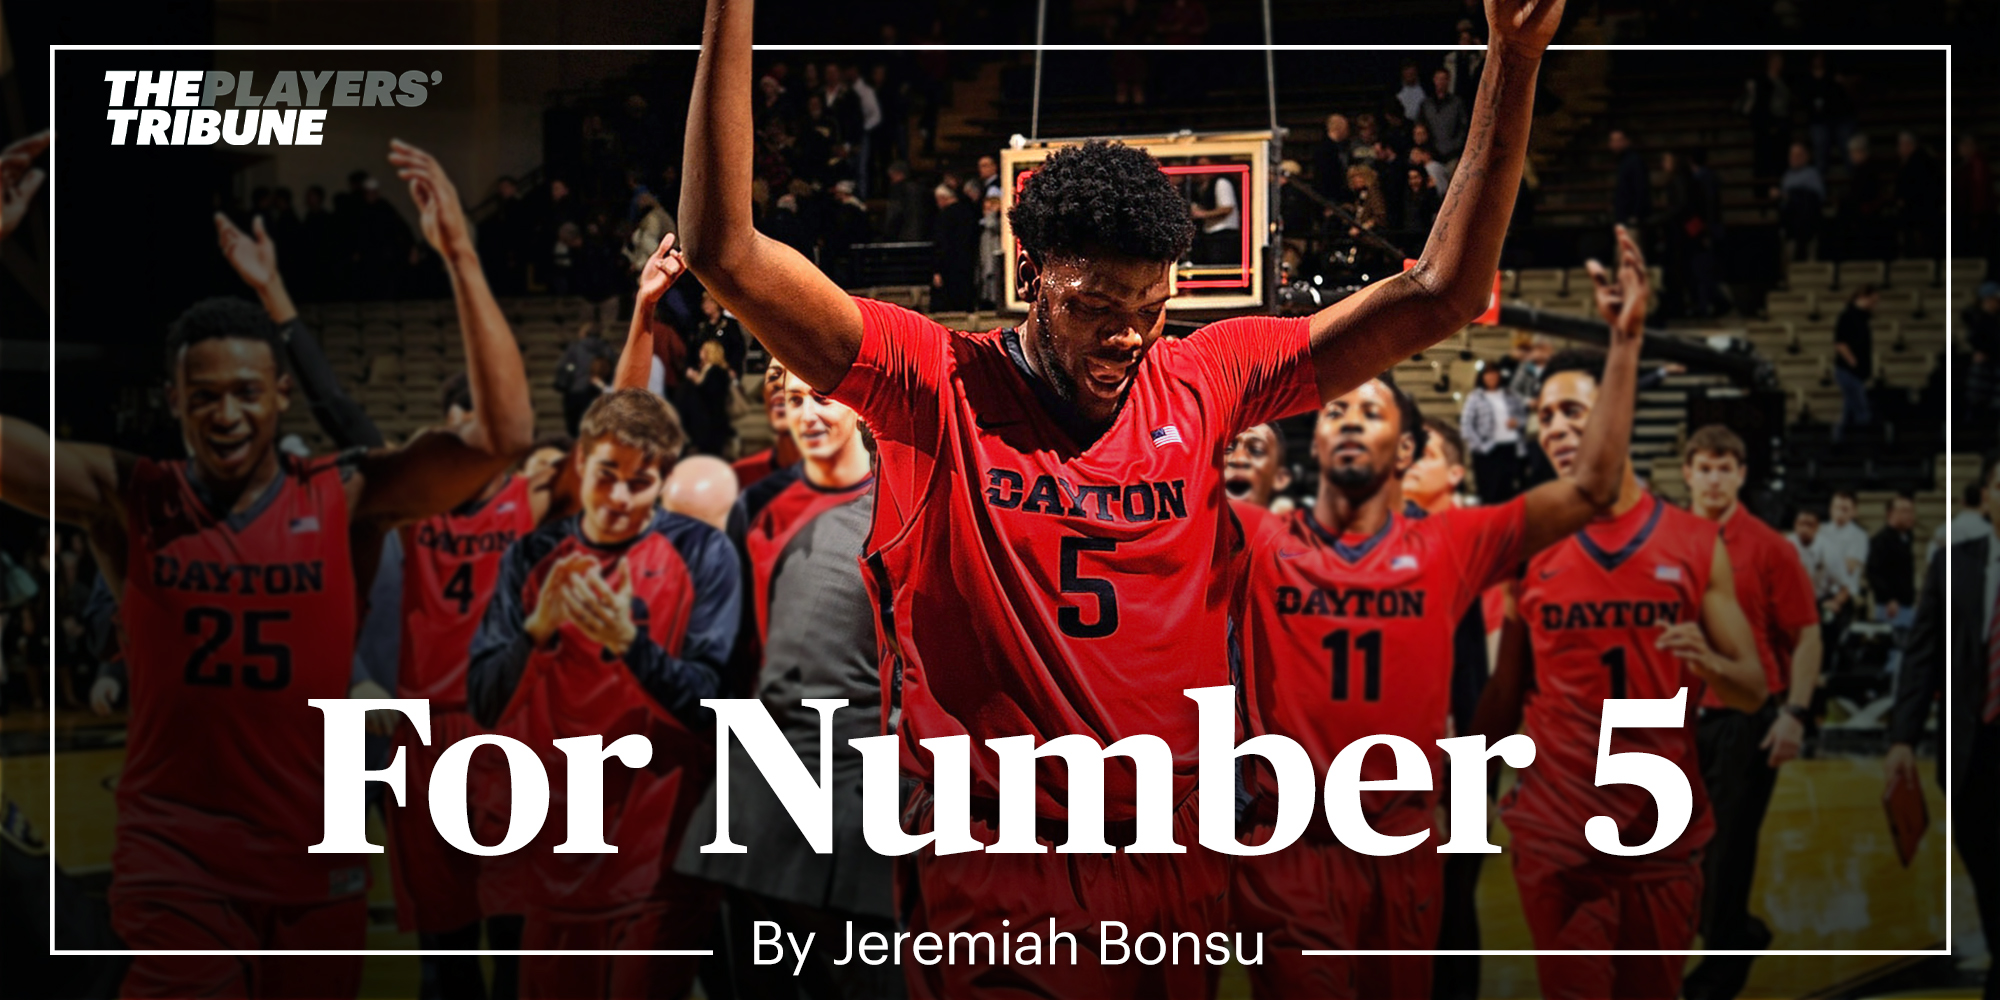 for number 5 by jeremiah bonsu